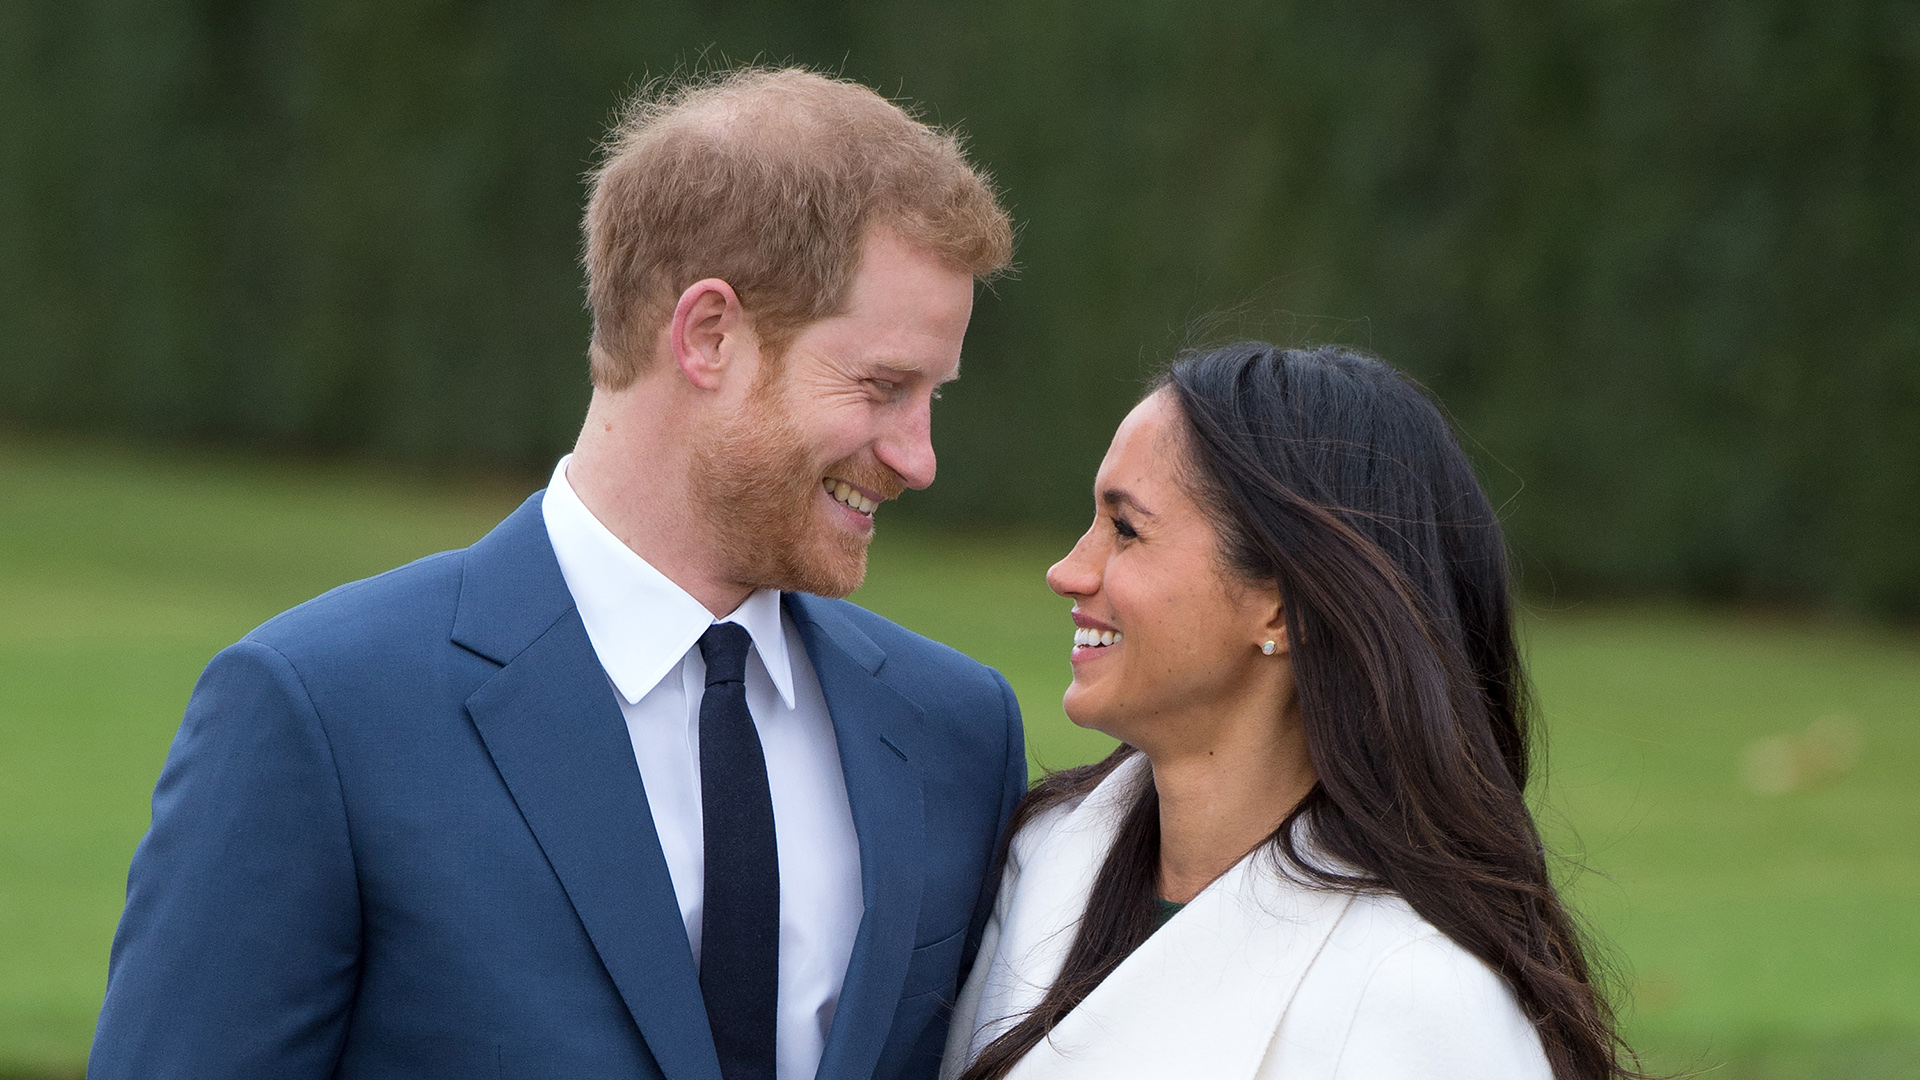 Week of programming planned ahead of Prince Harry, Meghan Markle nuptials